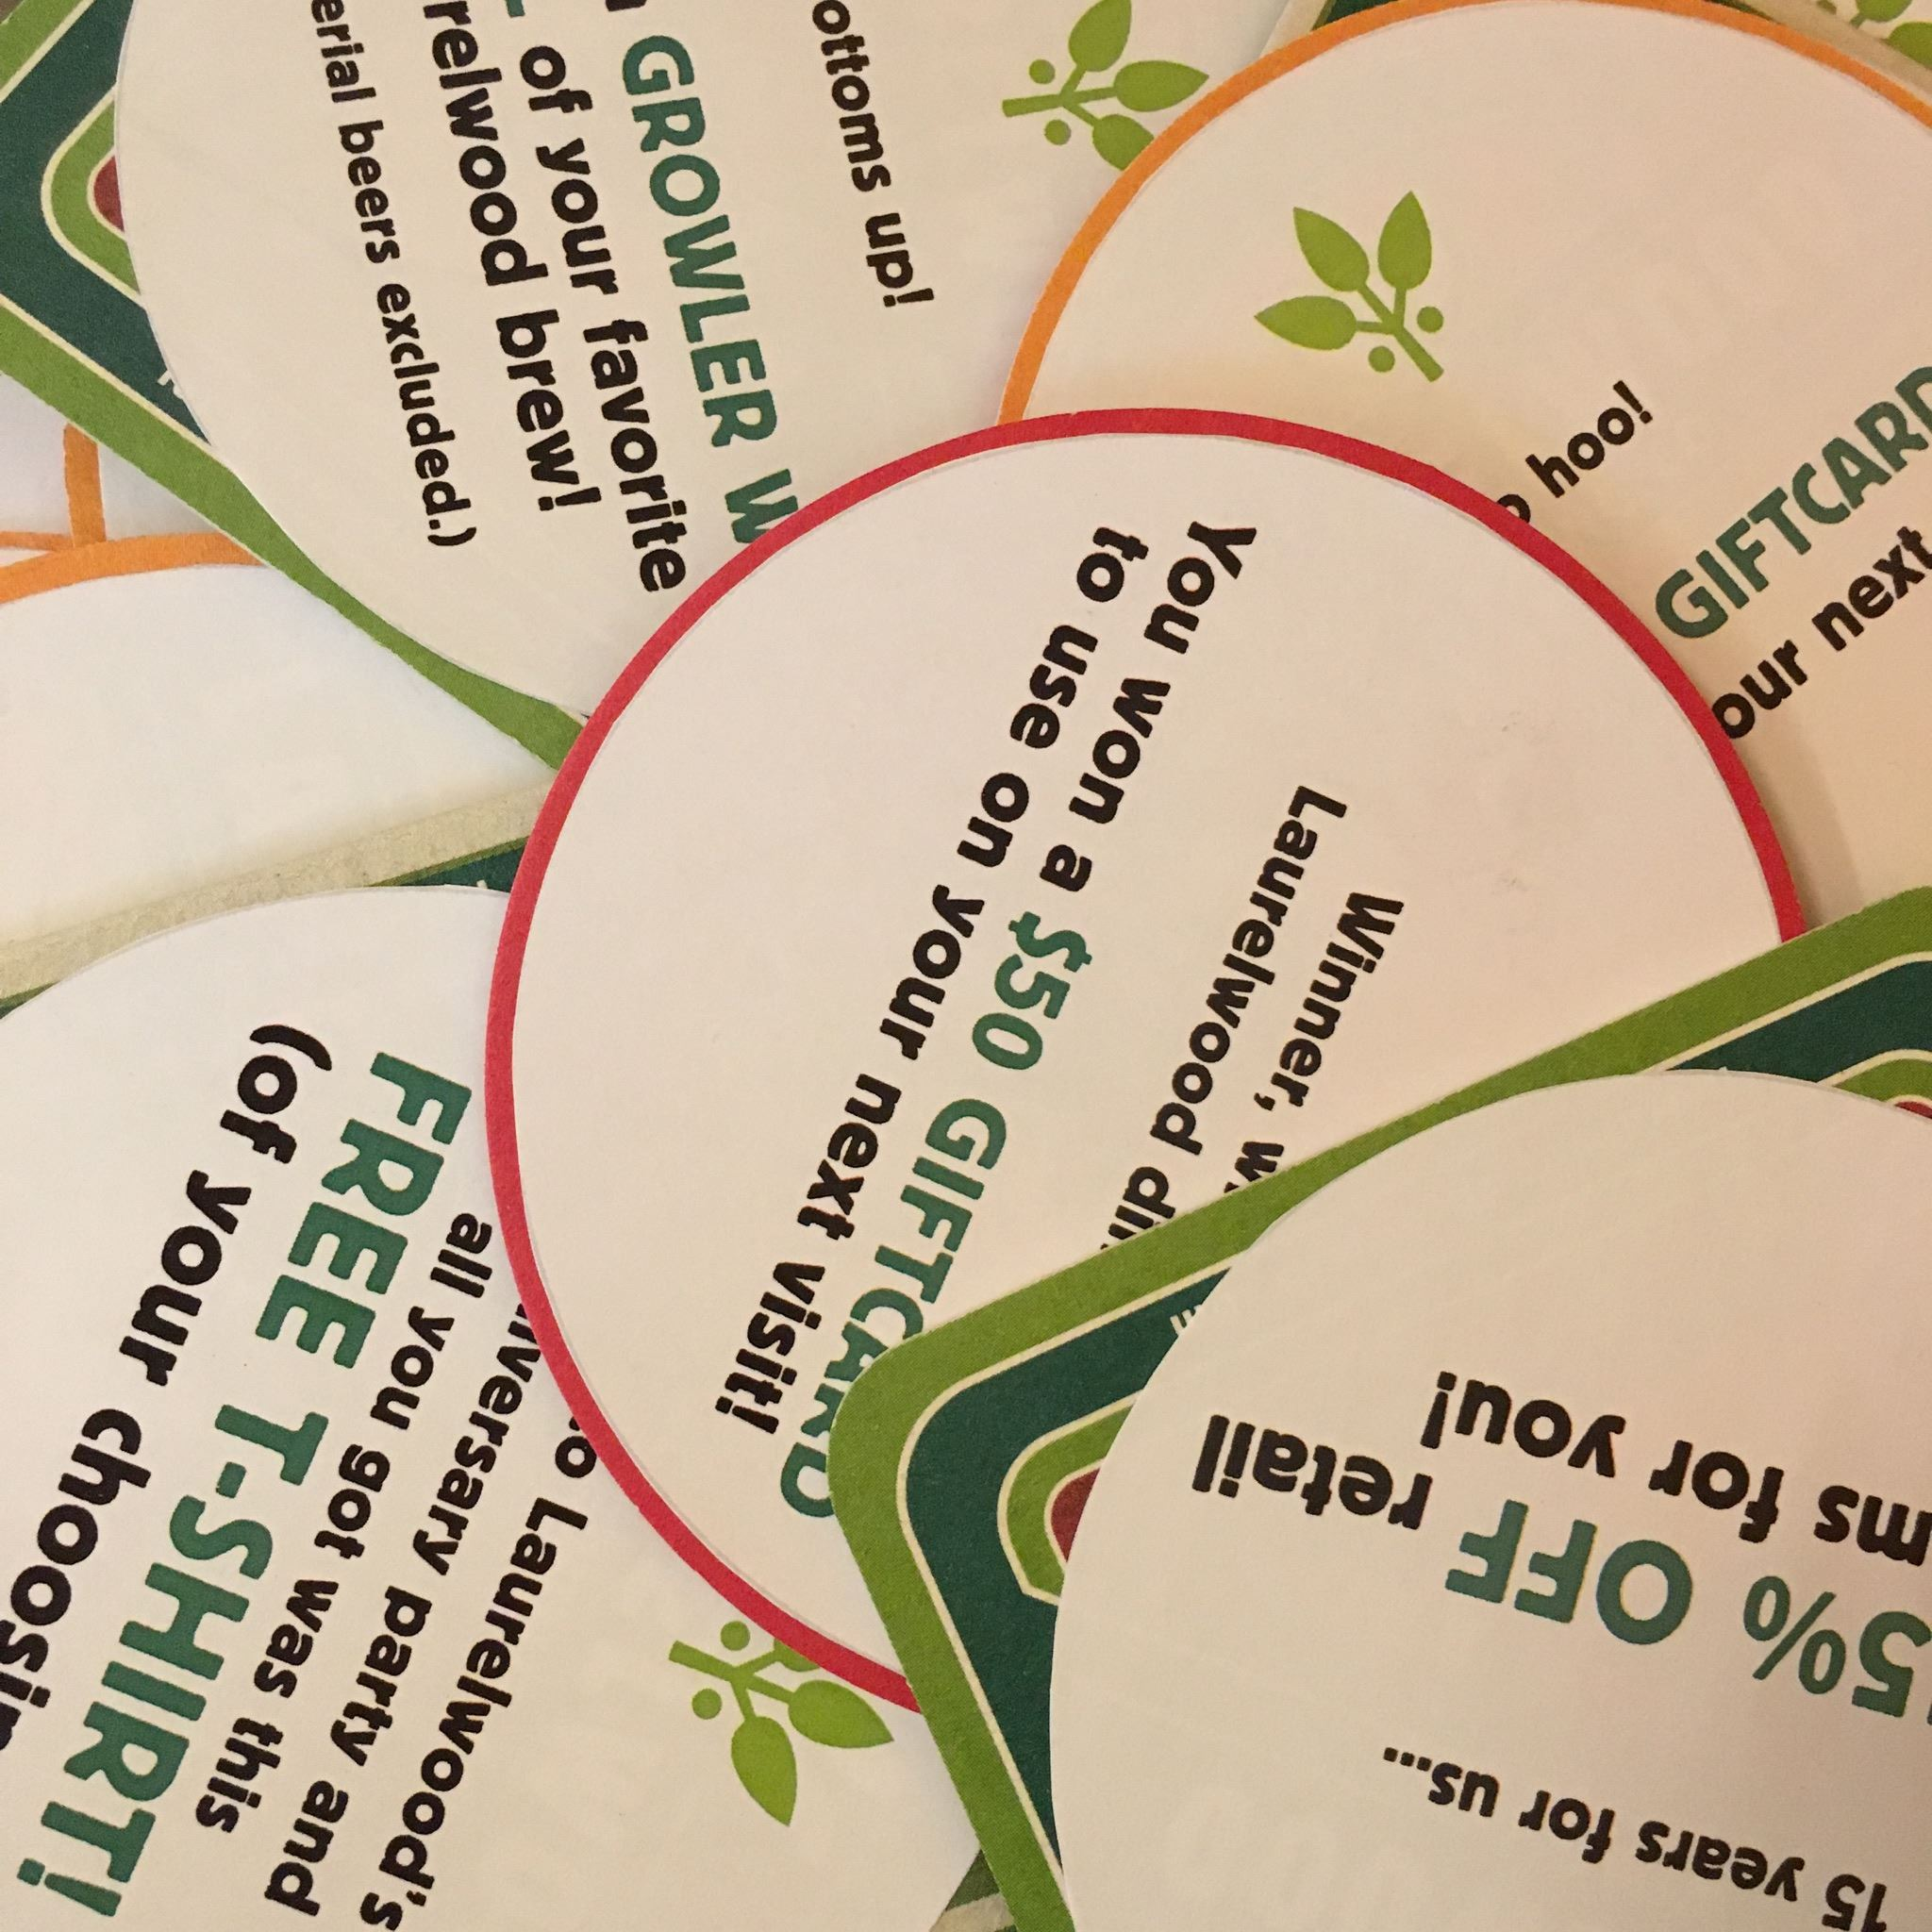 Laurelwood 15th Anniversary Promos (image courtesy of Laurelwood Brewing)